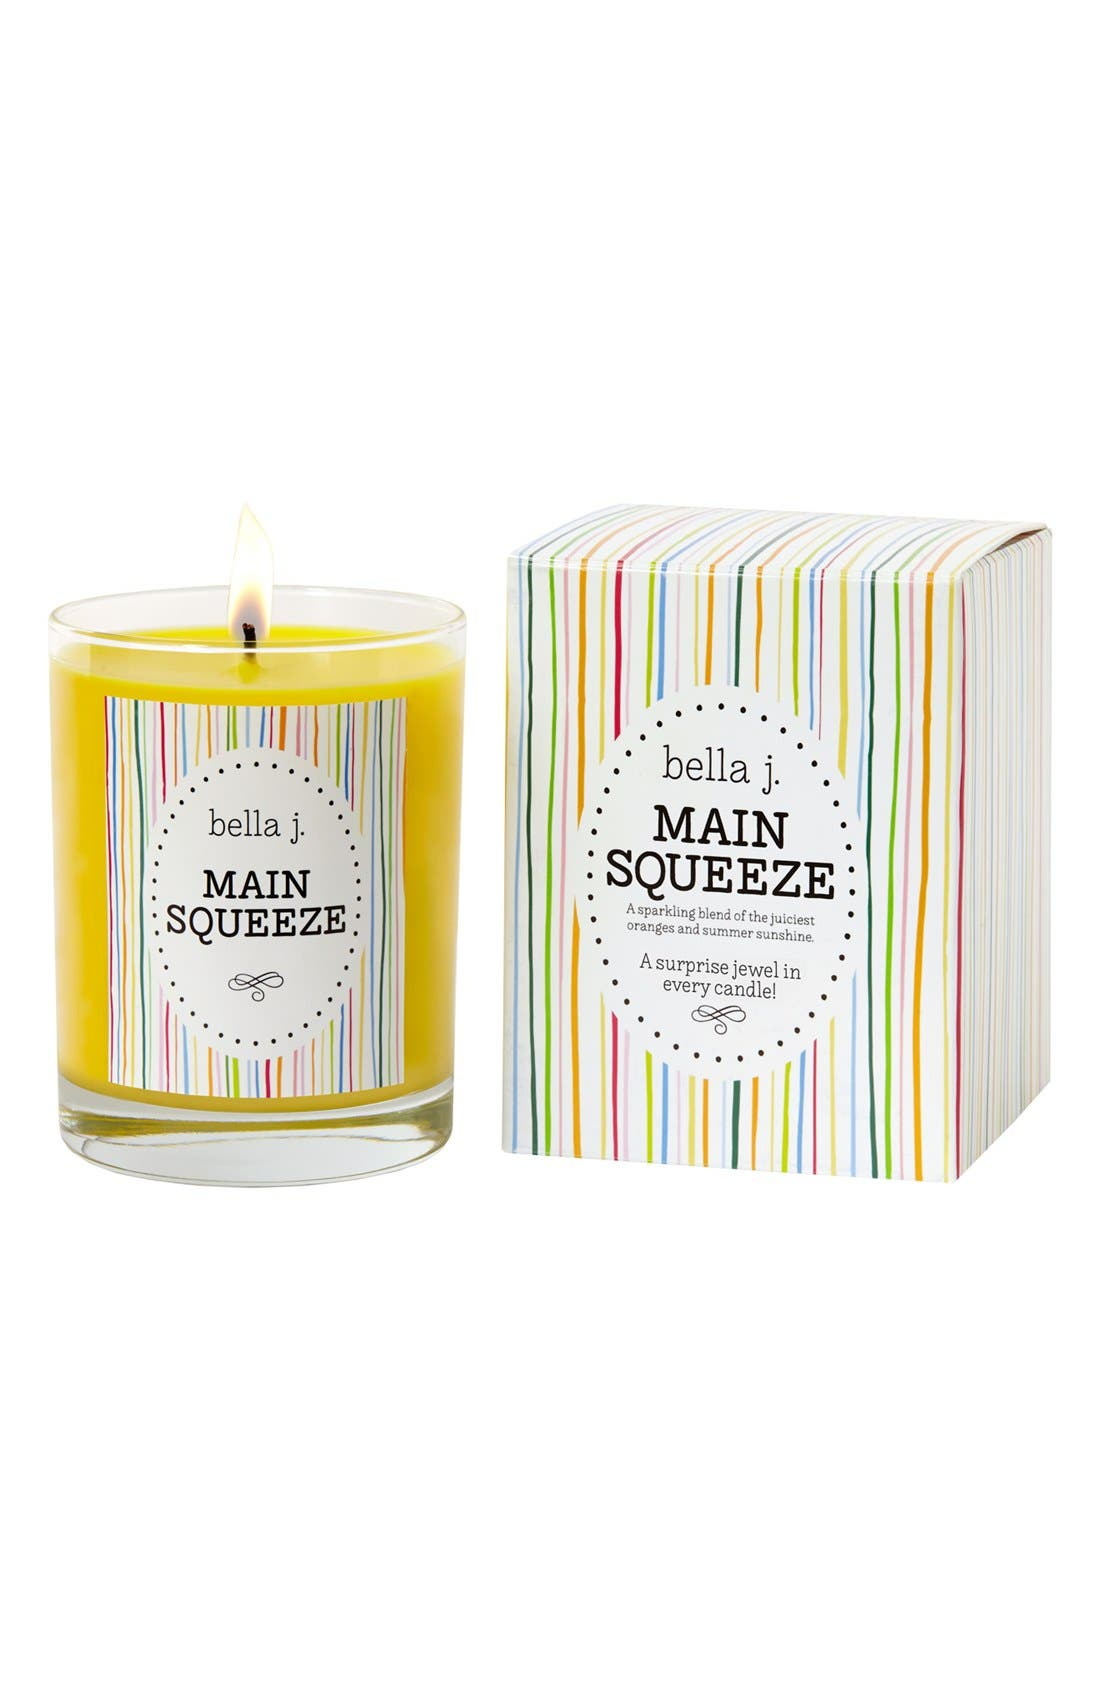 Alternate Image 1 Selected - bella j. 'Main Squeeze' Candle